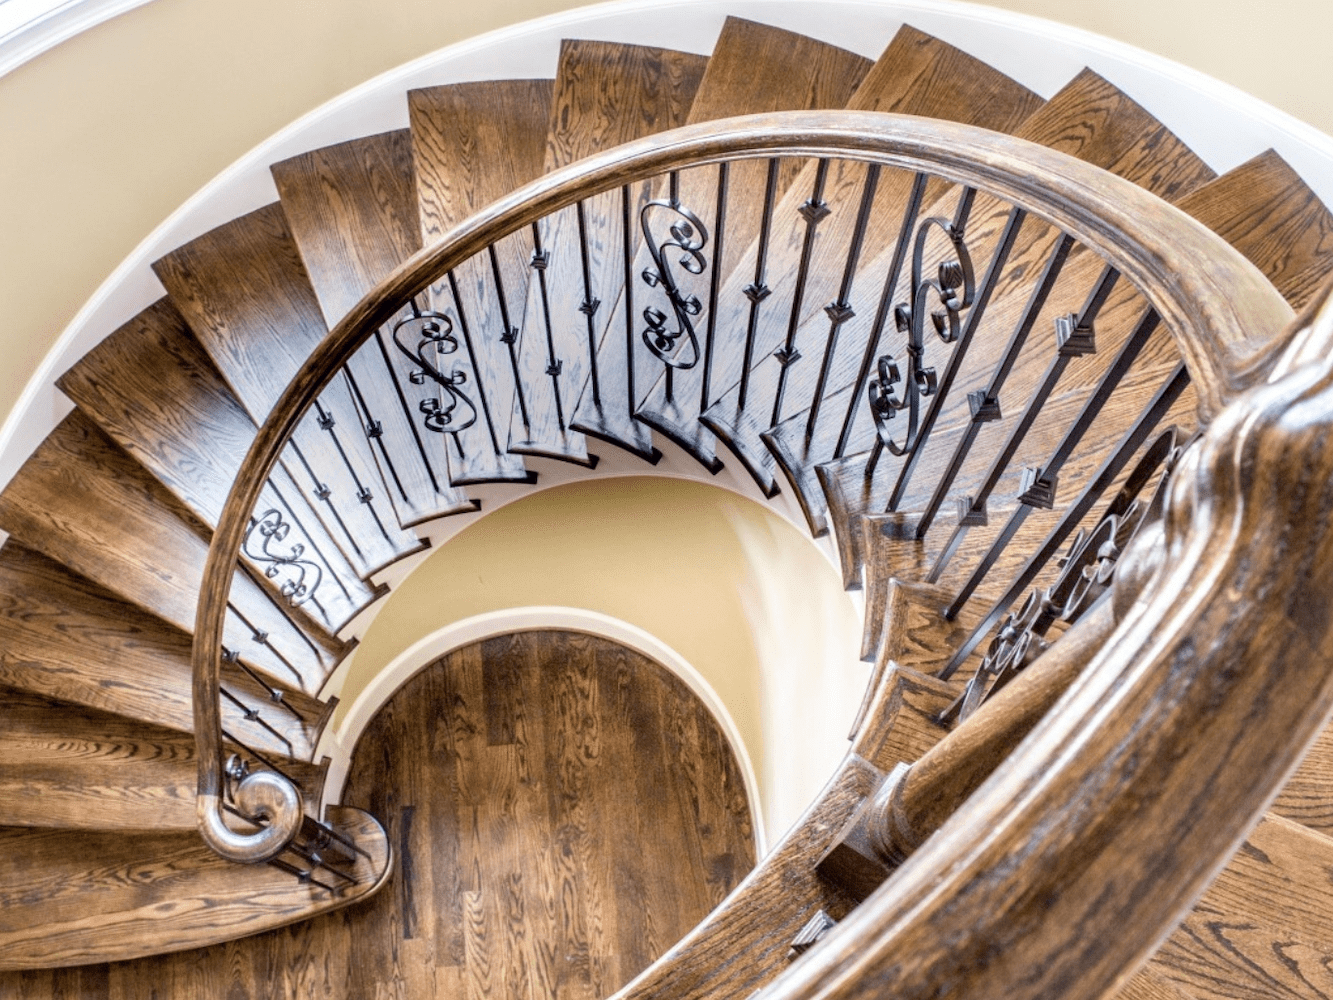 How To Build A Spiral Staircase | Used Metal Spiral Staircase For Sale | Stair Parts | Cast Iron | Foshan Demose | Wrought Iron | Stair Case